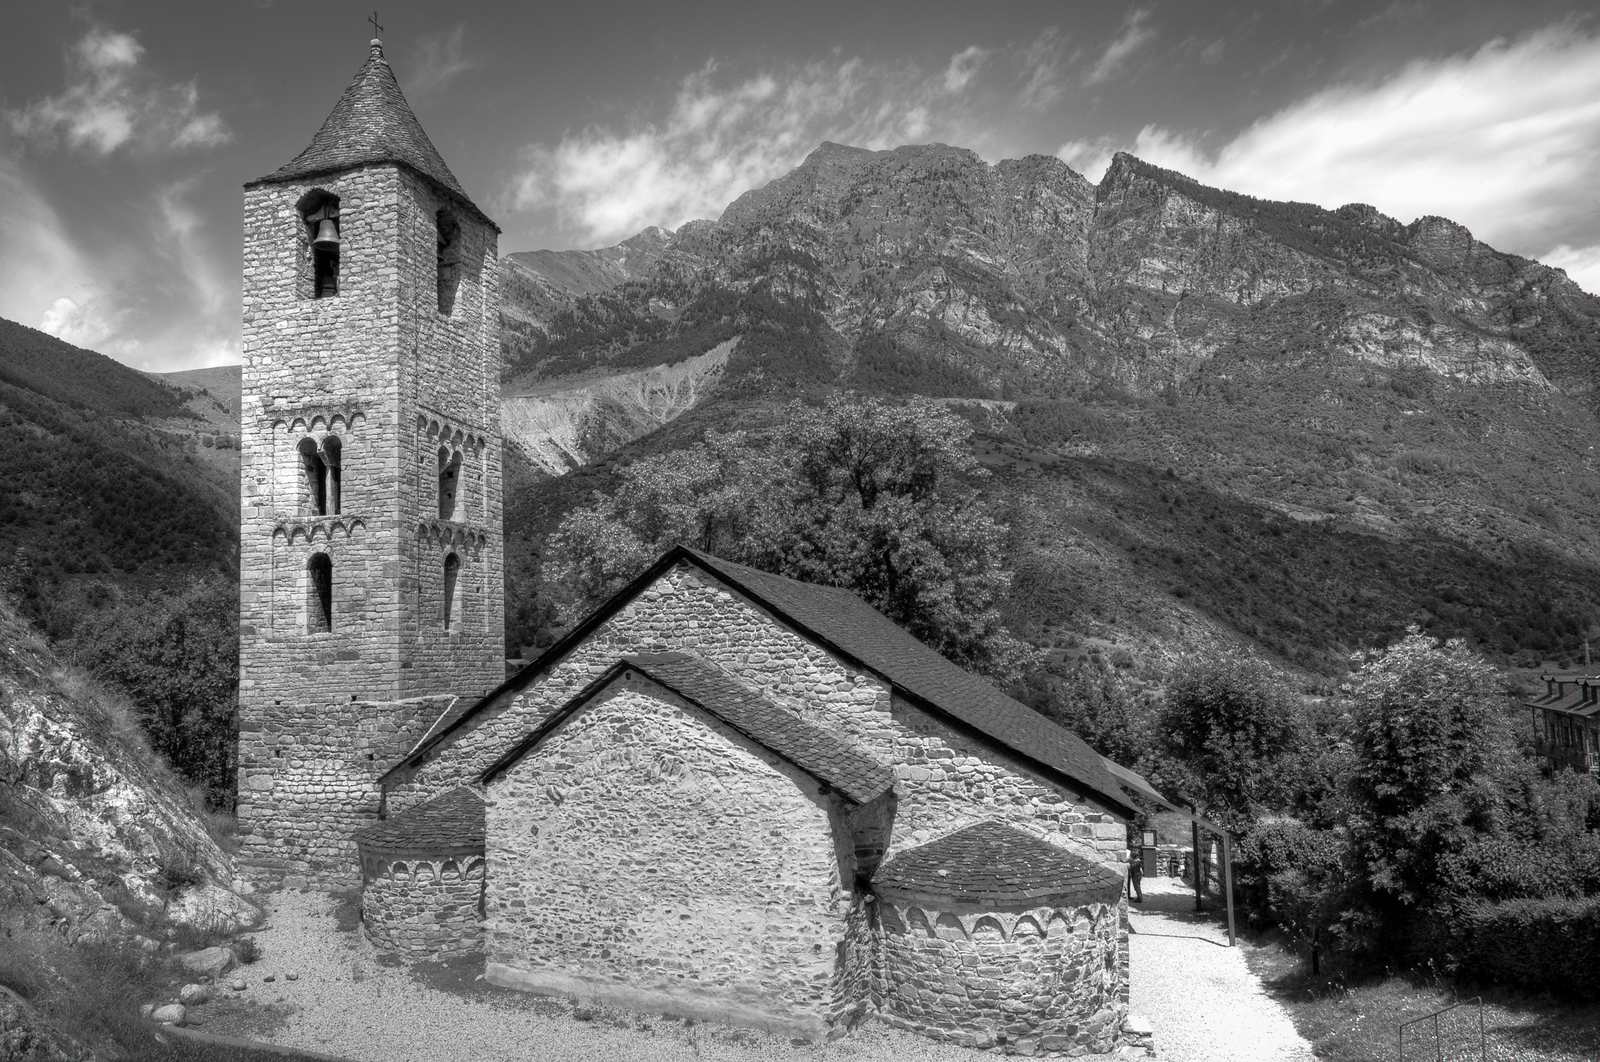 Catalan Romanesque Churches of the Vall de Boí World Heritage Site, Spain